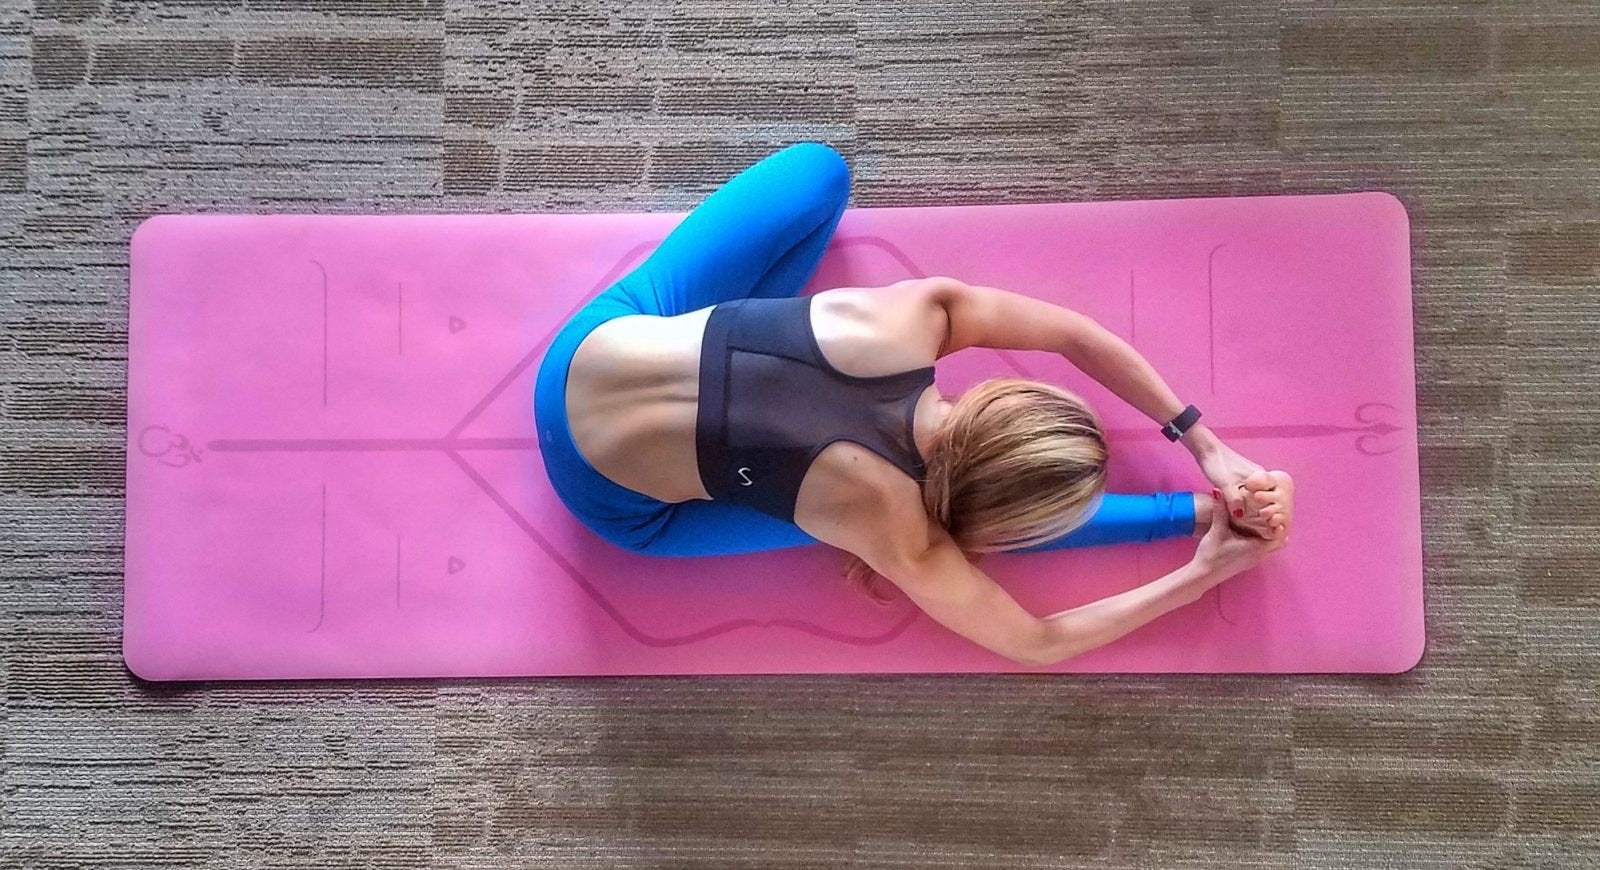 A woman doing a seated one-leg forward fold on a pink yoga mat.